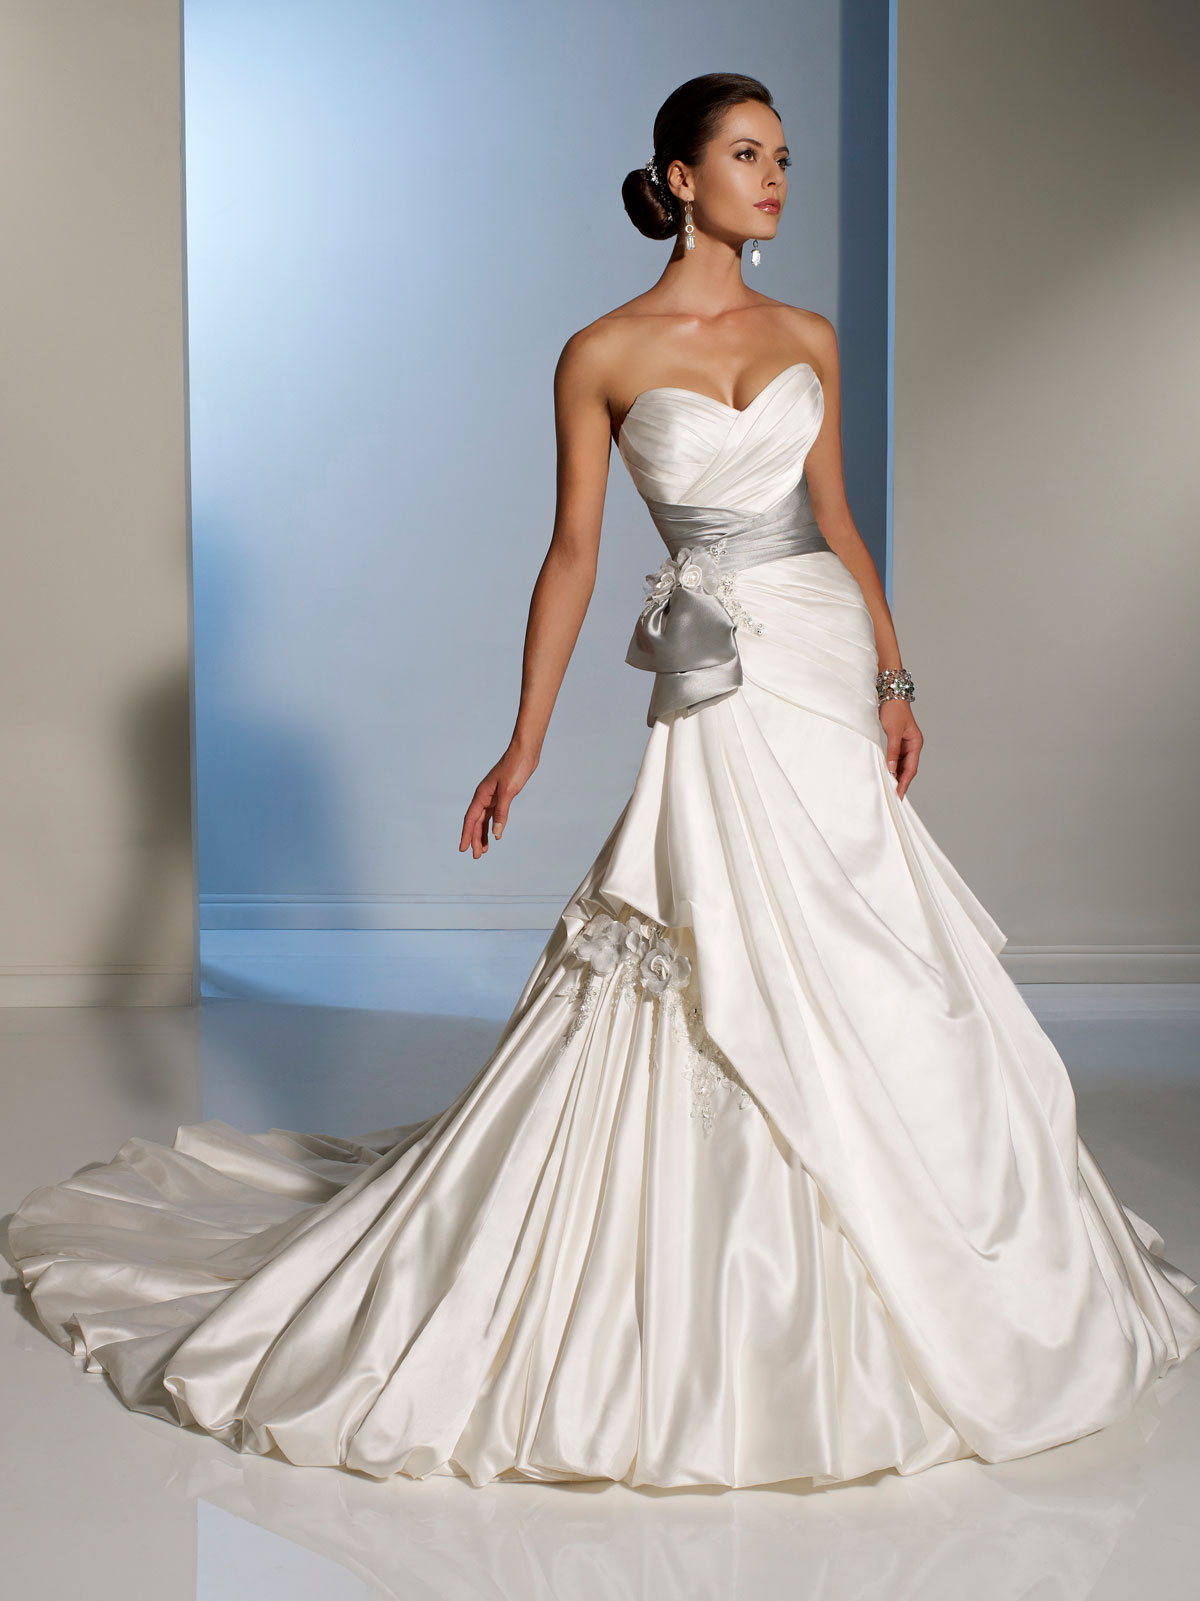 Bridal gowns with color silver wedding dresses Side Draped Wedding Dress with silver sash